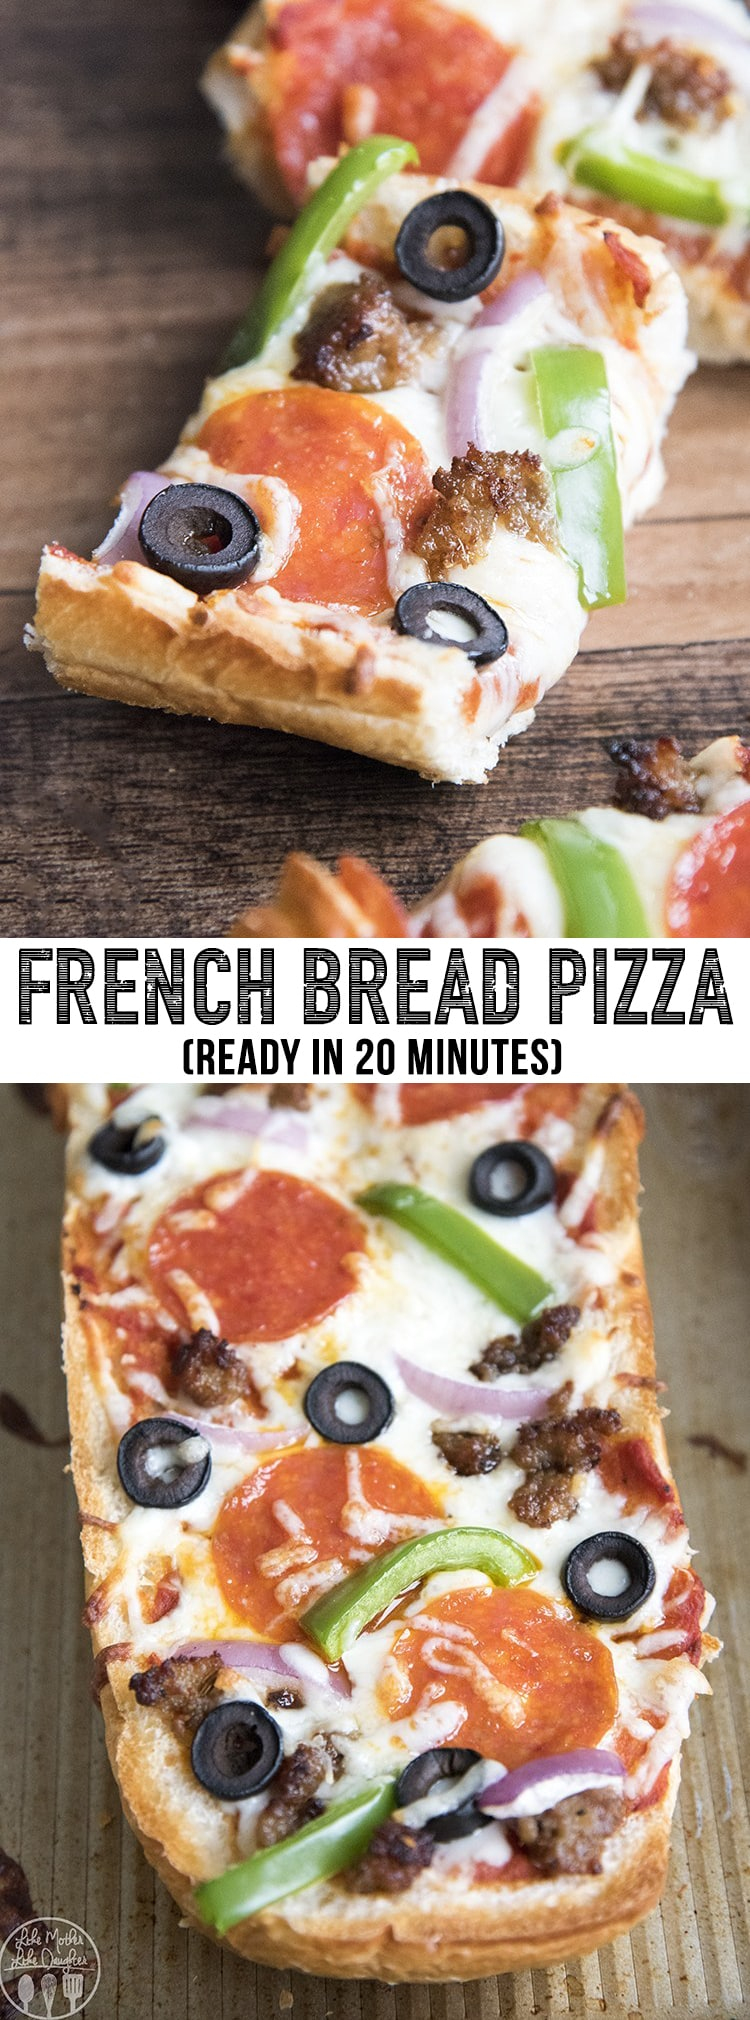 French bread pizza is the perfect way to have homemade pizza in only 20 minutes. With a crusty french bread crust, topped with your favorite pizza toppings #pizza #homemadepizza #easydinner #frenchbreadpizza #recipes #dinnerrecipes #30minutemeal